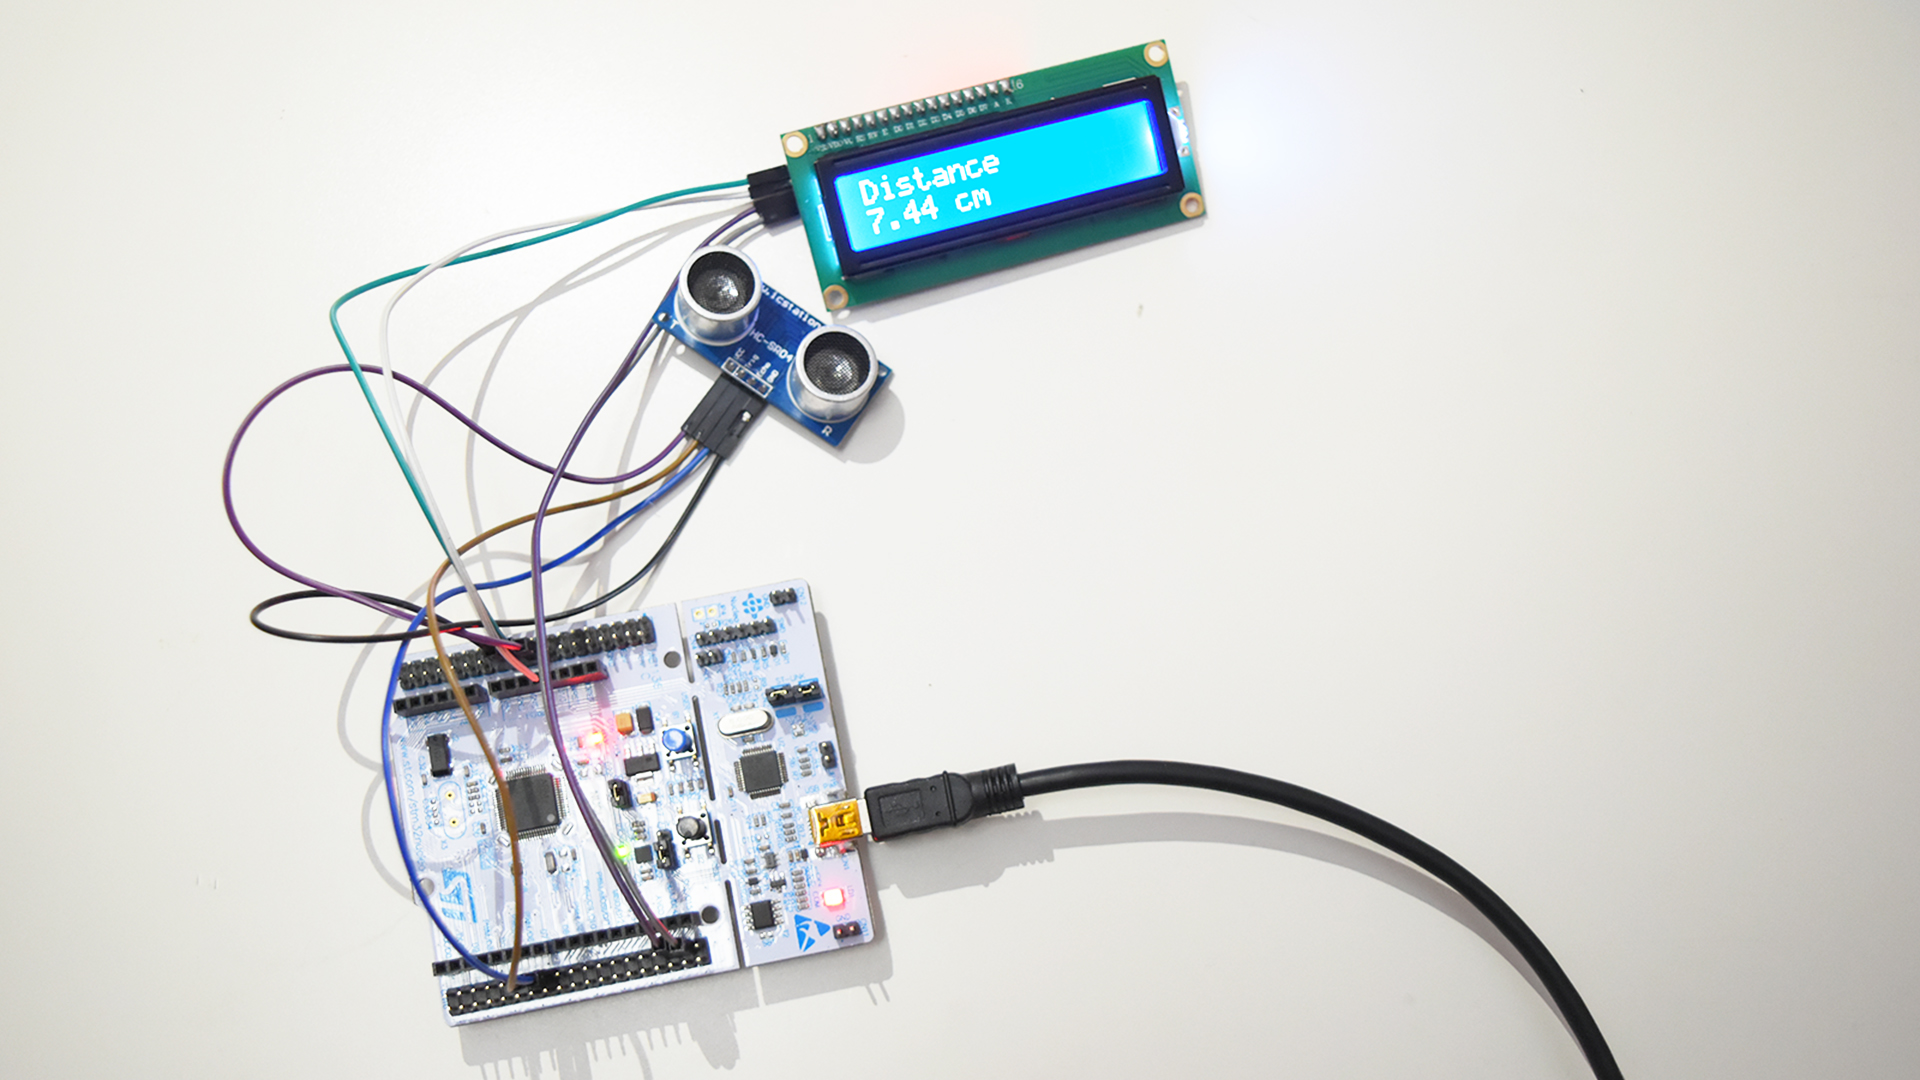 Detecting obstacles using an ultrasonic sensor HC-SR04